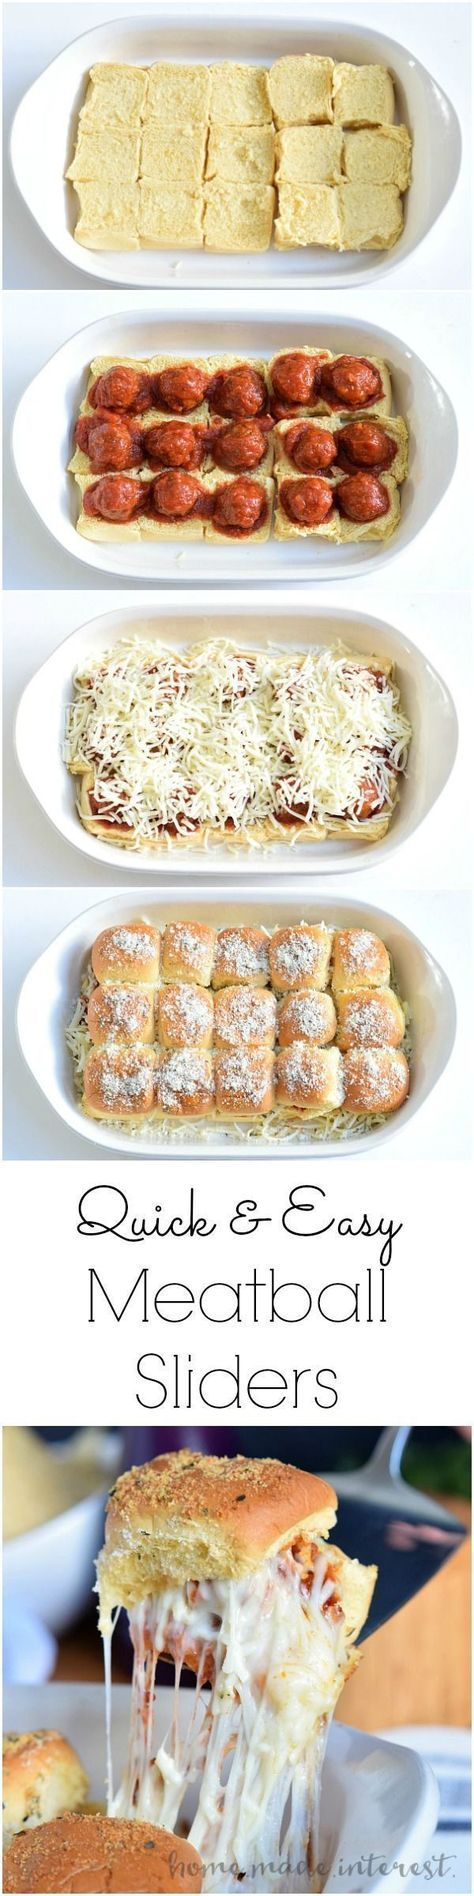 Meatball Sliders | These cheesy Meatball Sliders are an easy appetizer recipe for game day. Make them for your Super Bowl Party or any party where you have to feed a crowd. Everyone will love this easy slider recipe!